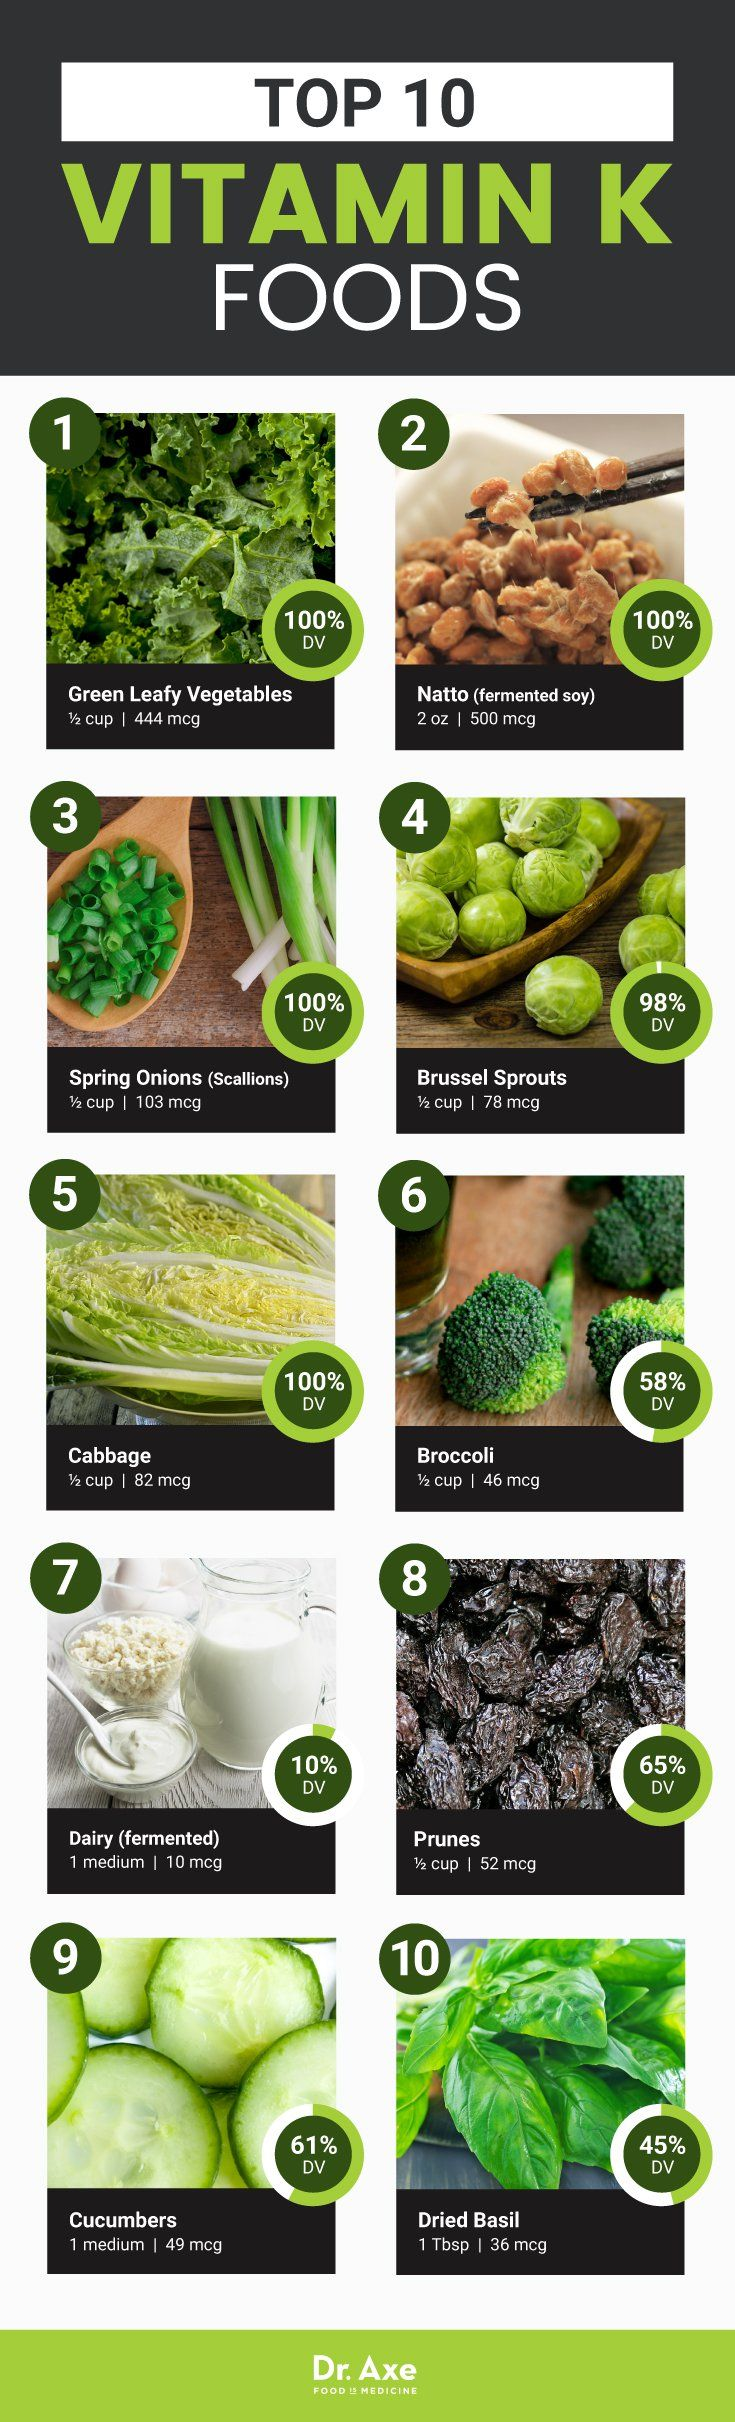 Top 10 vitamin K foods - Dr. Axe